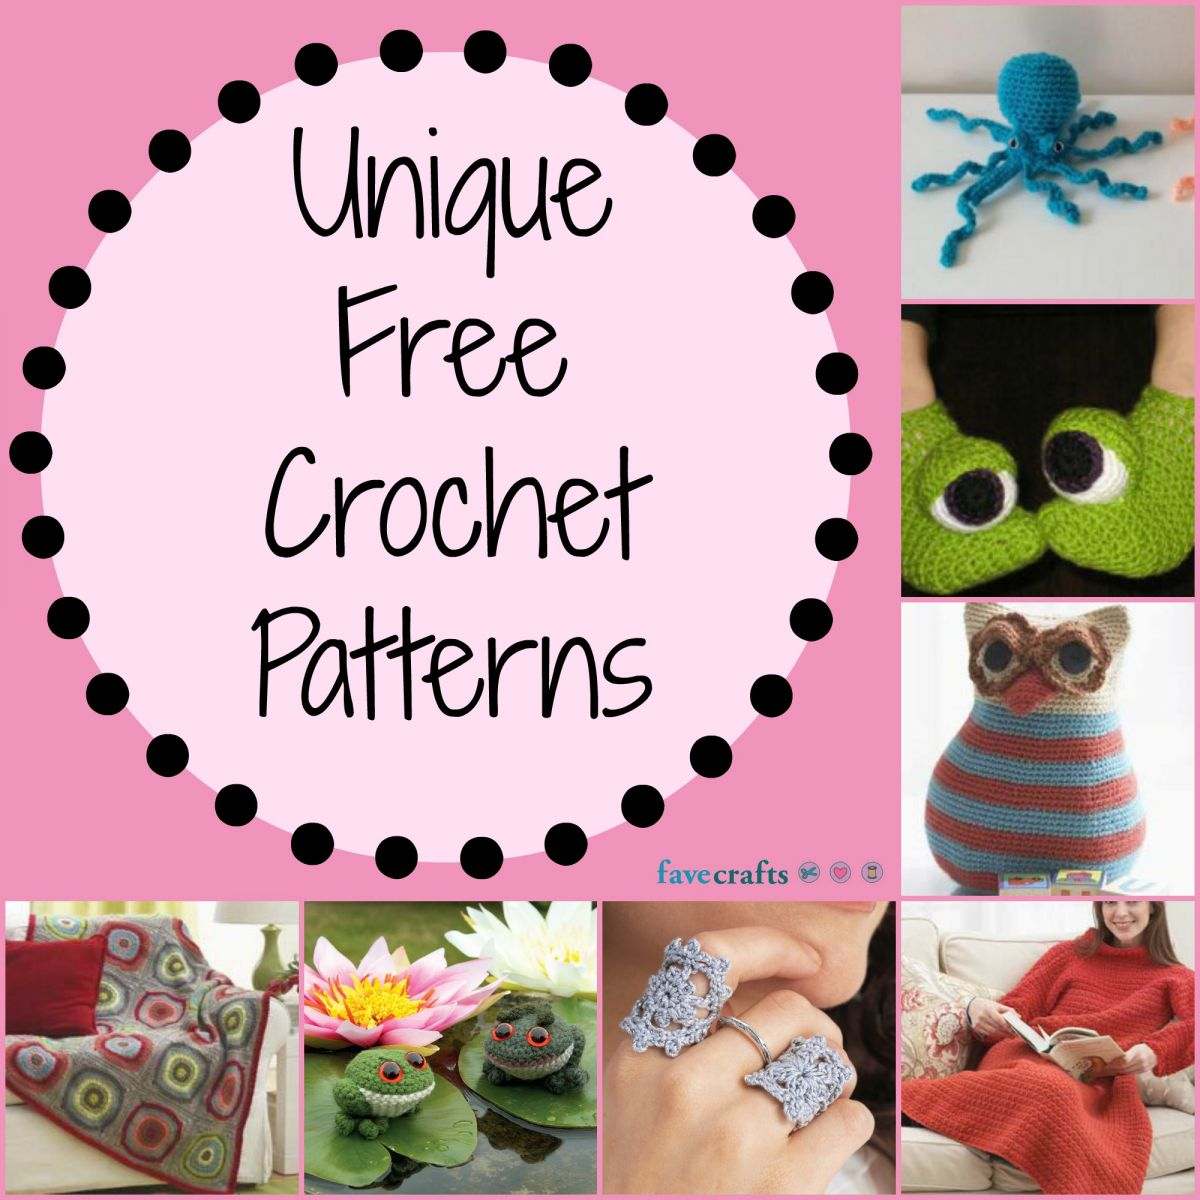 17 Unique Free Crochet Patterns | FaveCrafts.com